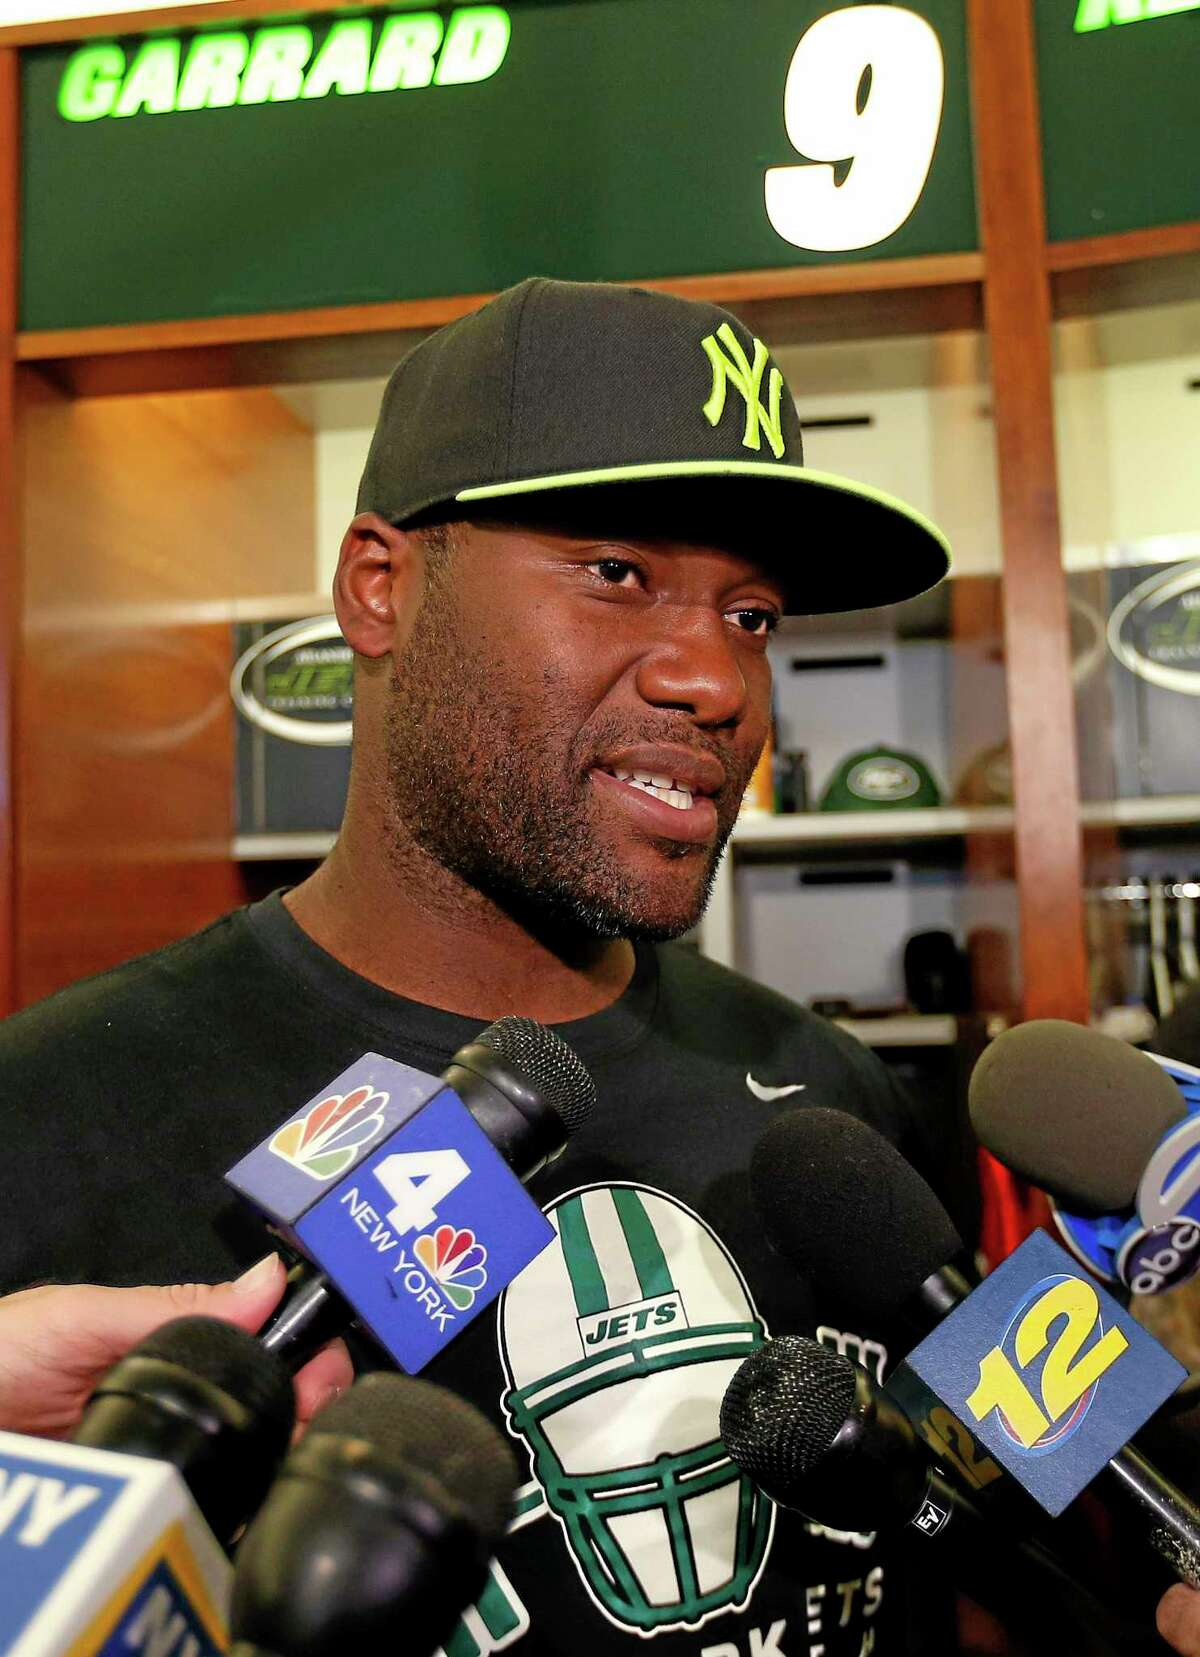 In this May 2 file photo, New York Jets quarterback David Garrard talks to reporters at the team's practice facility in Florham Park, N.J.